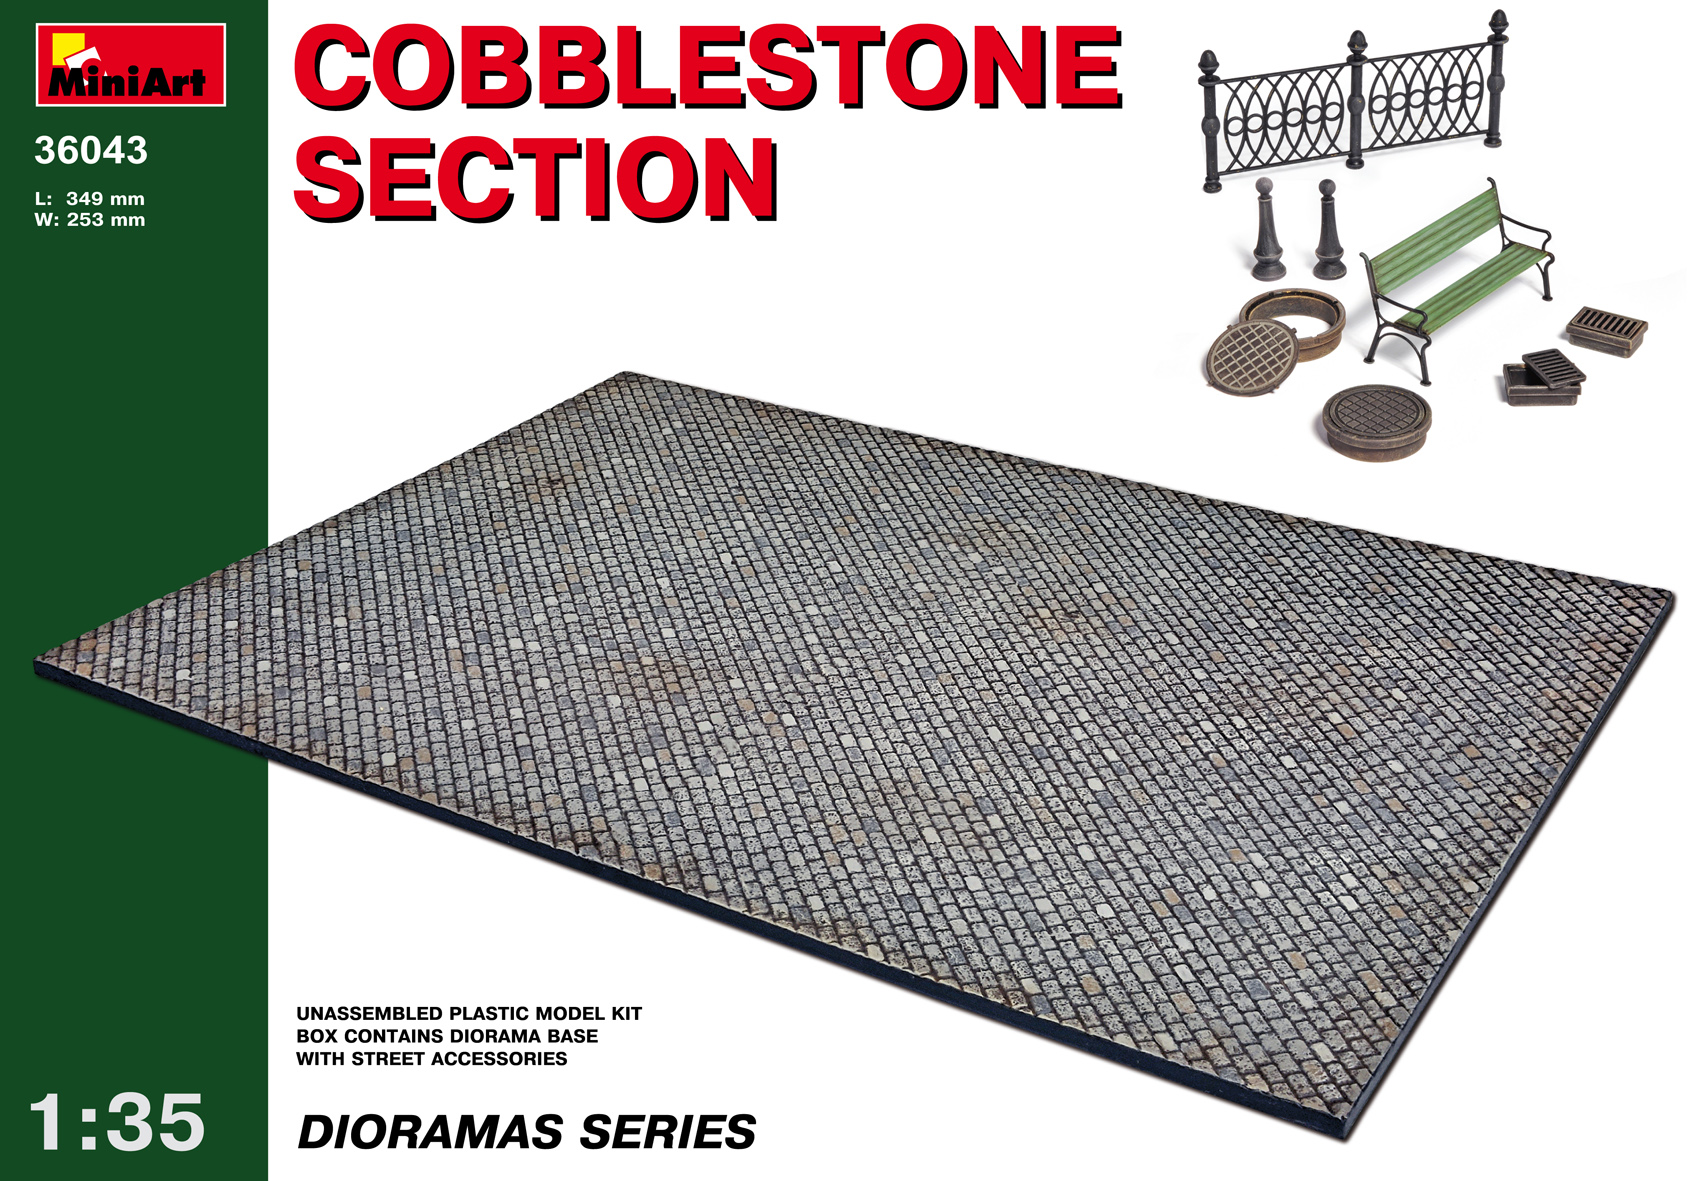 36043 COBBLESTONE SECTION